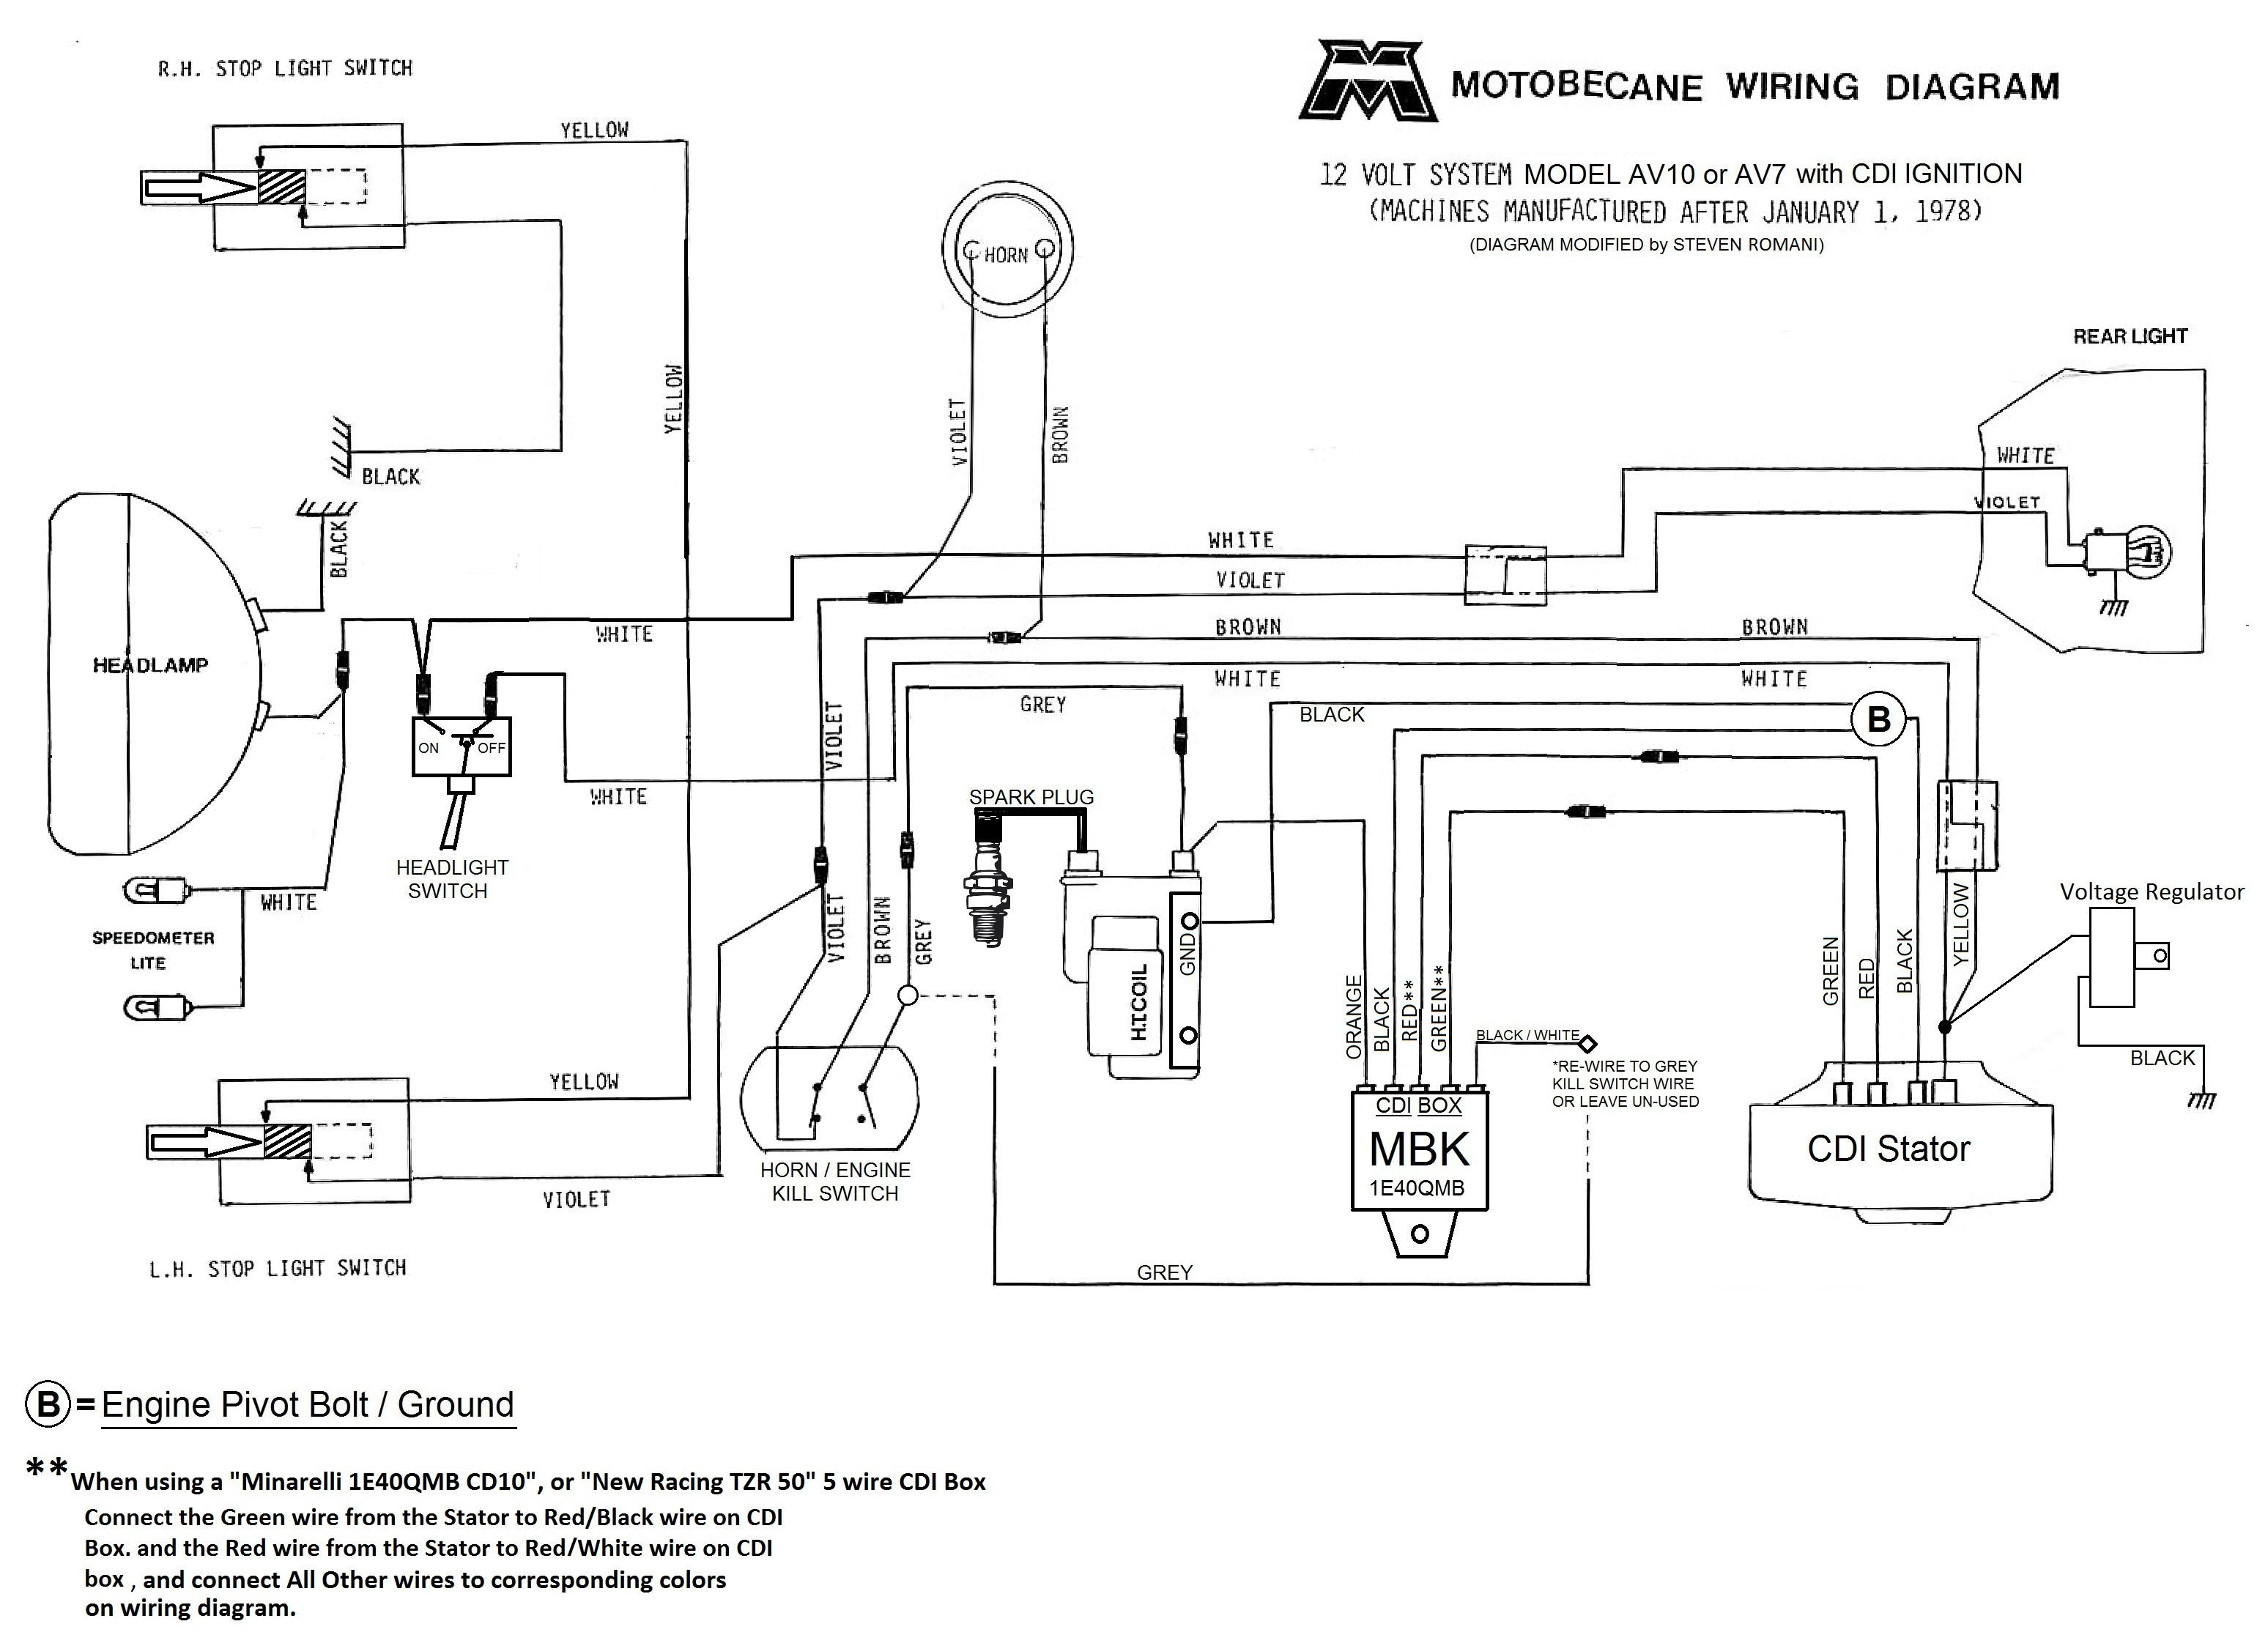 Motobecane Wiring Diagrams Moped Wiki 12v Diagram Cdi Av10 And Av7